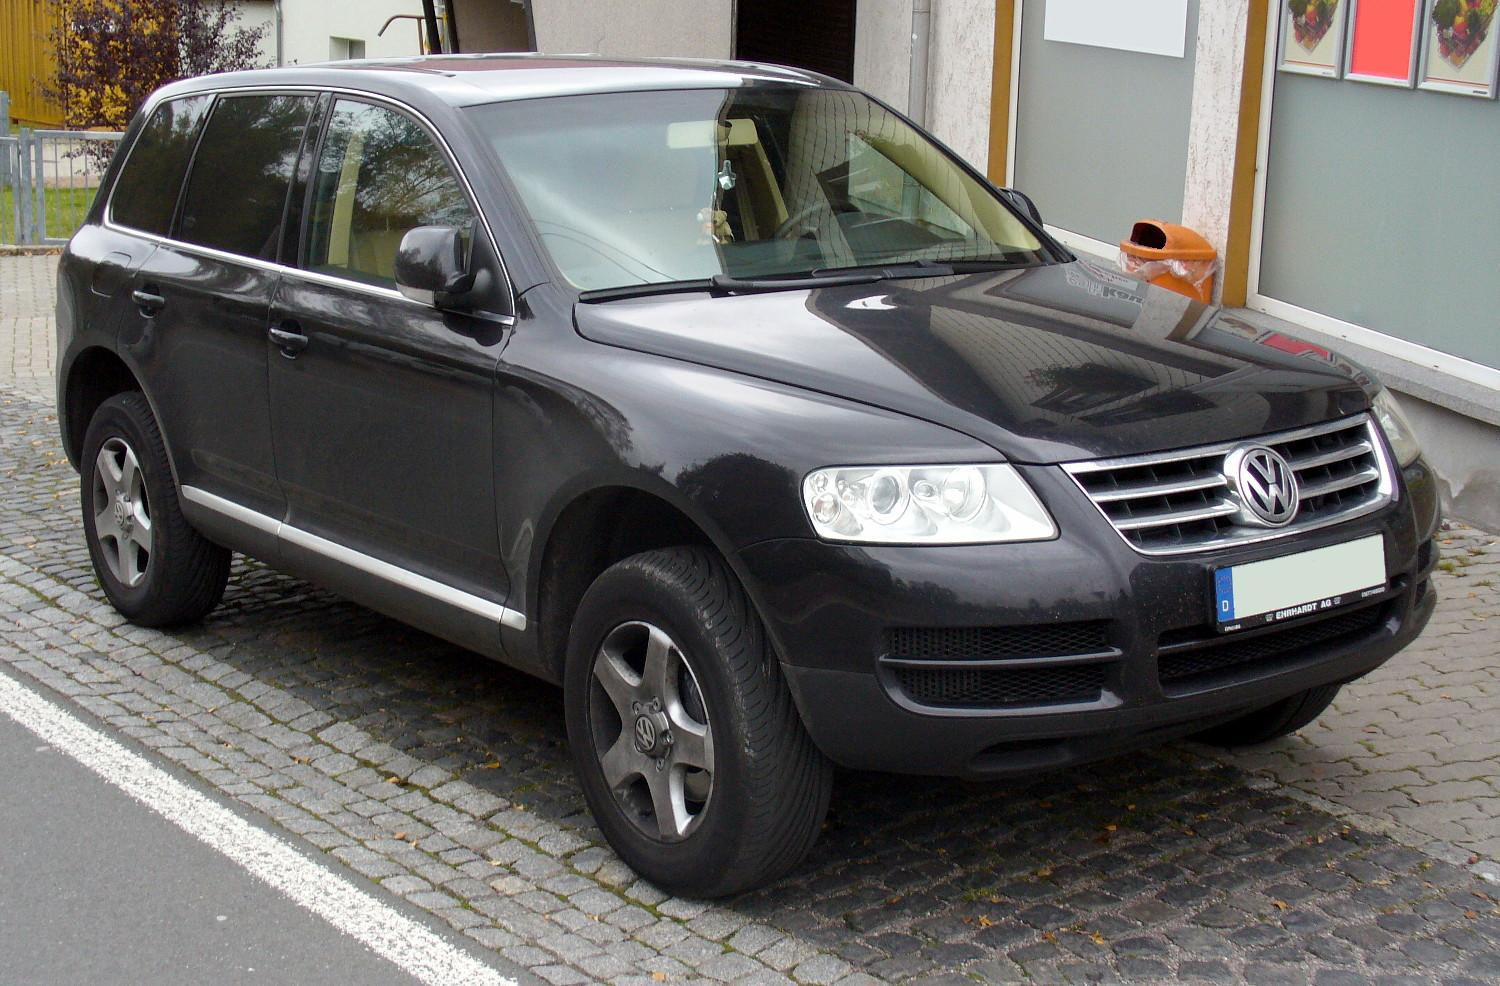 2015 volkswagen tiguan with File Vw Touareg Black on 2950 Tuning Porsche 944 Turbo together with Watch furthermore Viewtopic as well 048 I204049276 also Fahrbericht Neuer Vw Touran 2 0 Tdi.